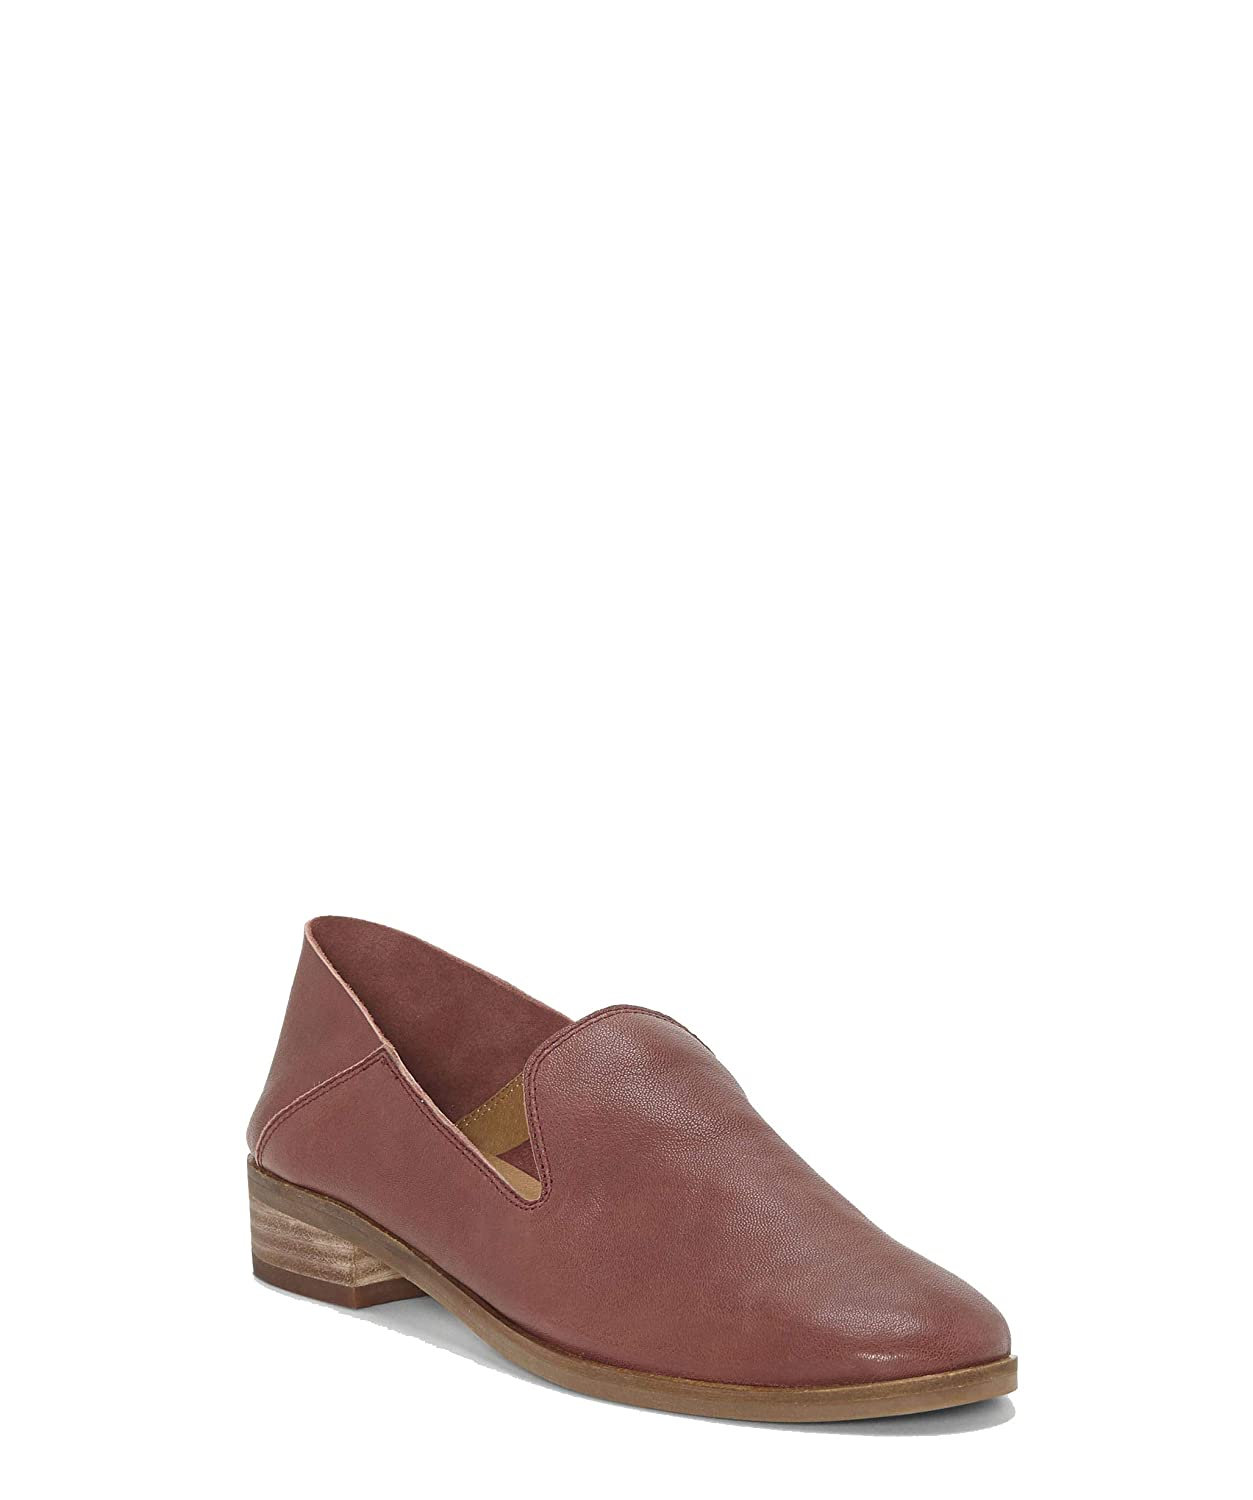 Lucky Brand Womens Cahill Loafer Flat-Burgundy Nappa